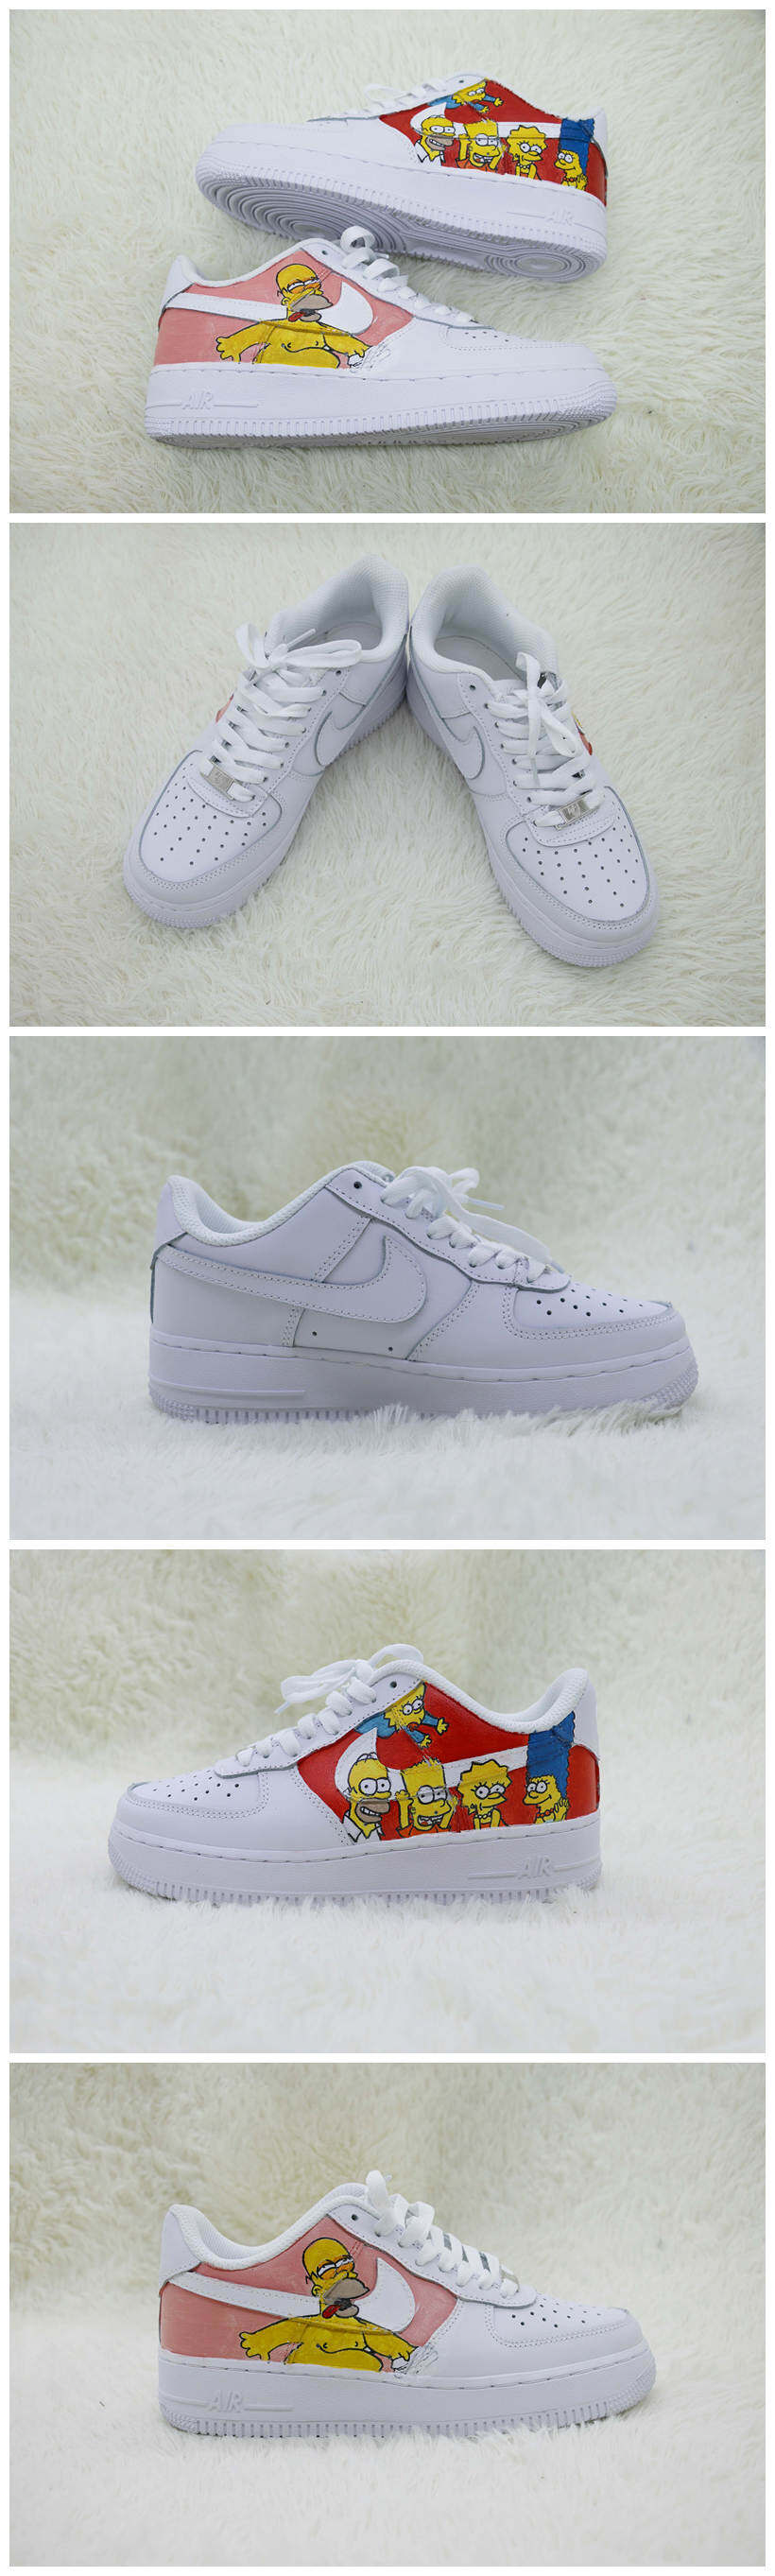 Custom The Simpons Shoes For Air Force 1 White Graffiti Hand Painted Sneaker - A009Custom The Simpons Shoes For Air Force 1 Graffiti Hand Painted Sneaker - The Zero Custom